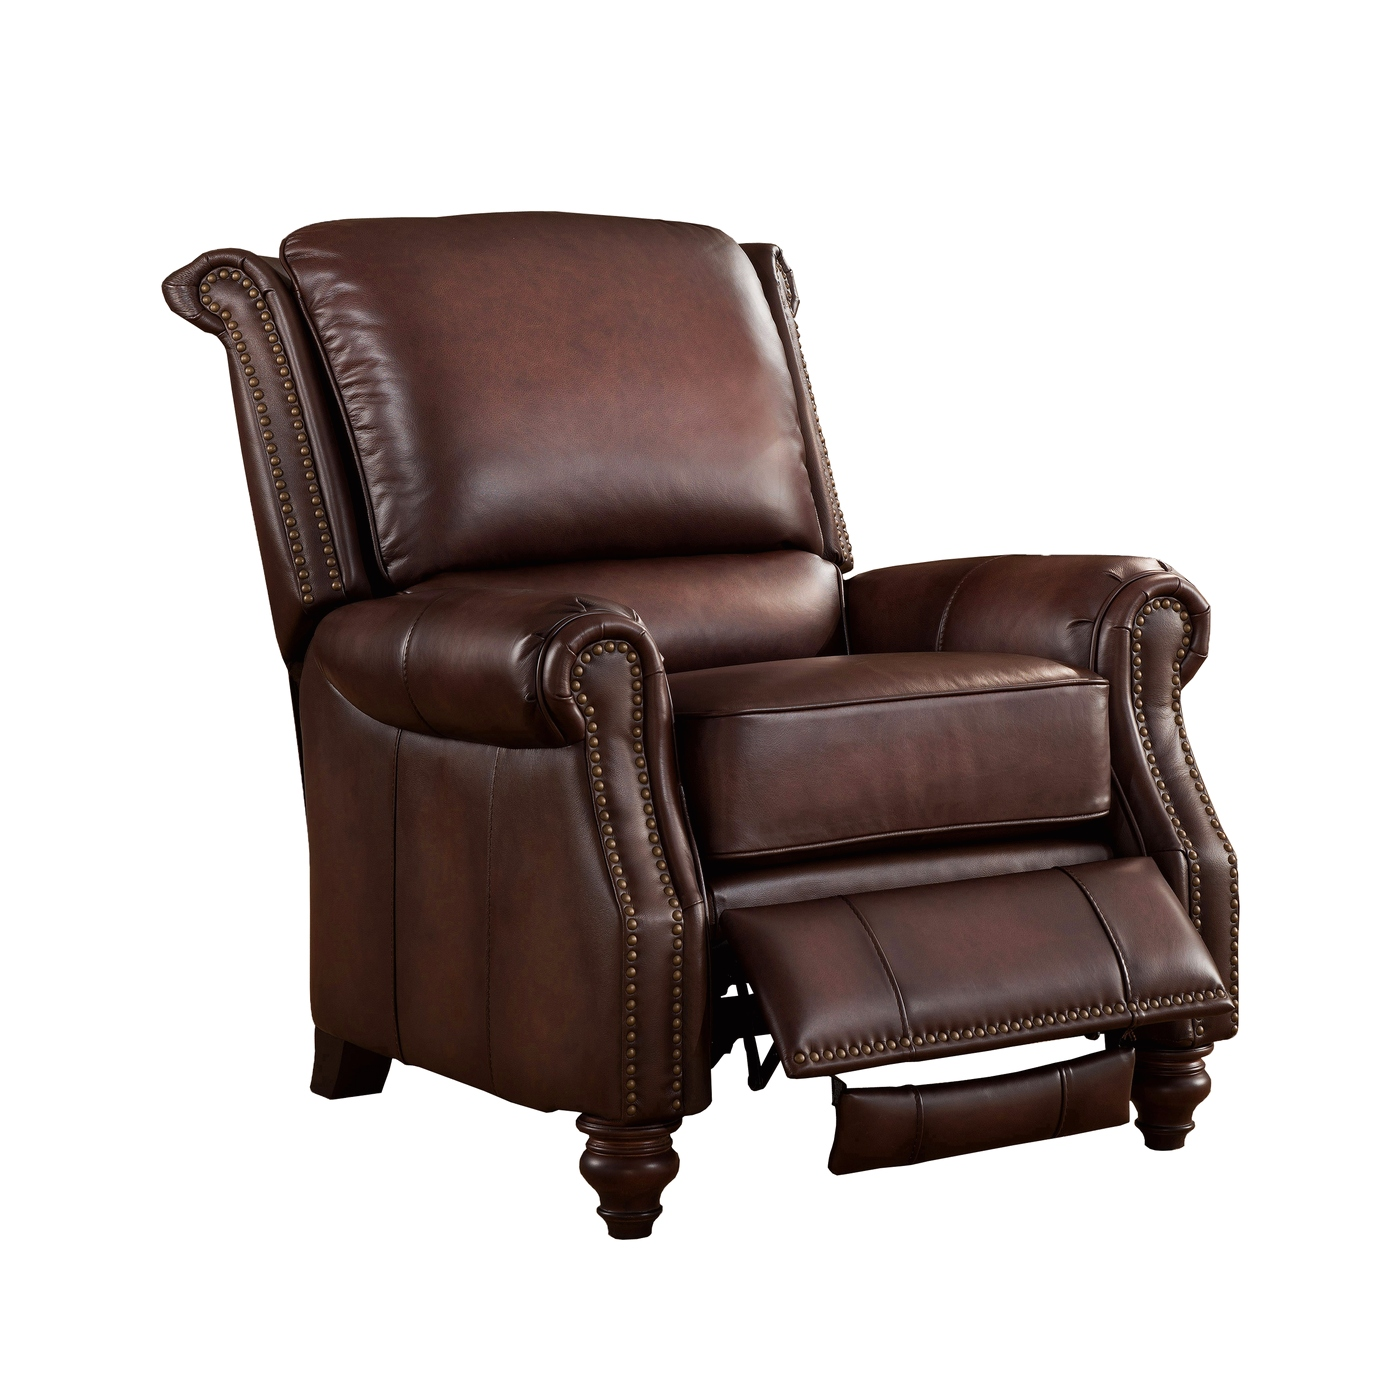 Real Leather Recliner Chairs Churchill Traditional Genuine Brown Leather Pushback